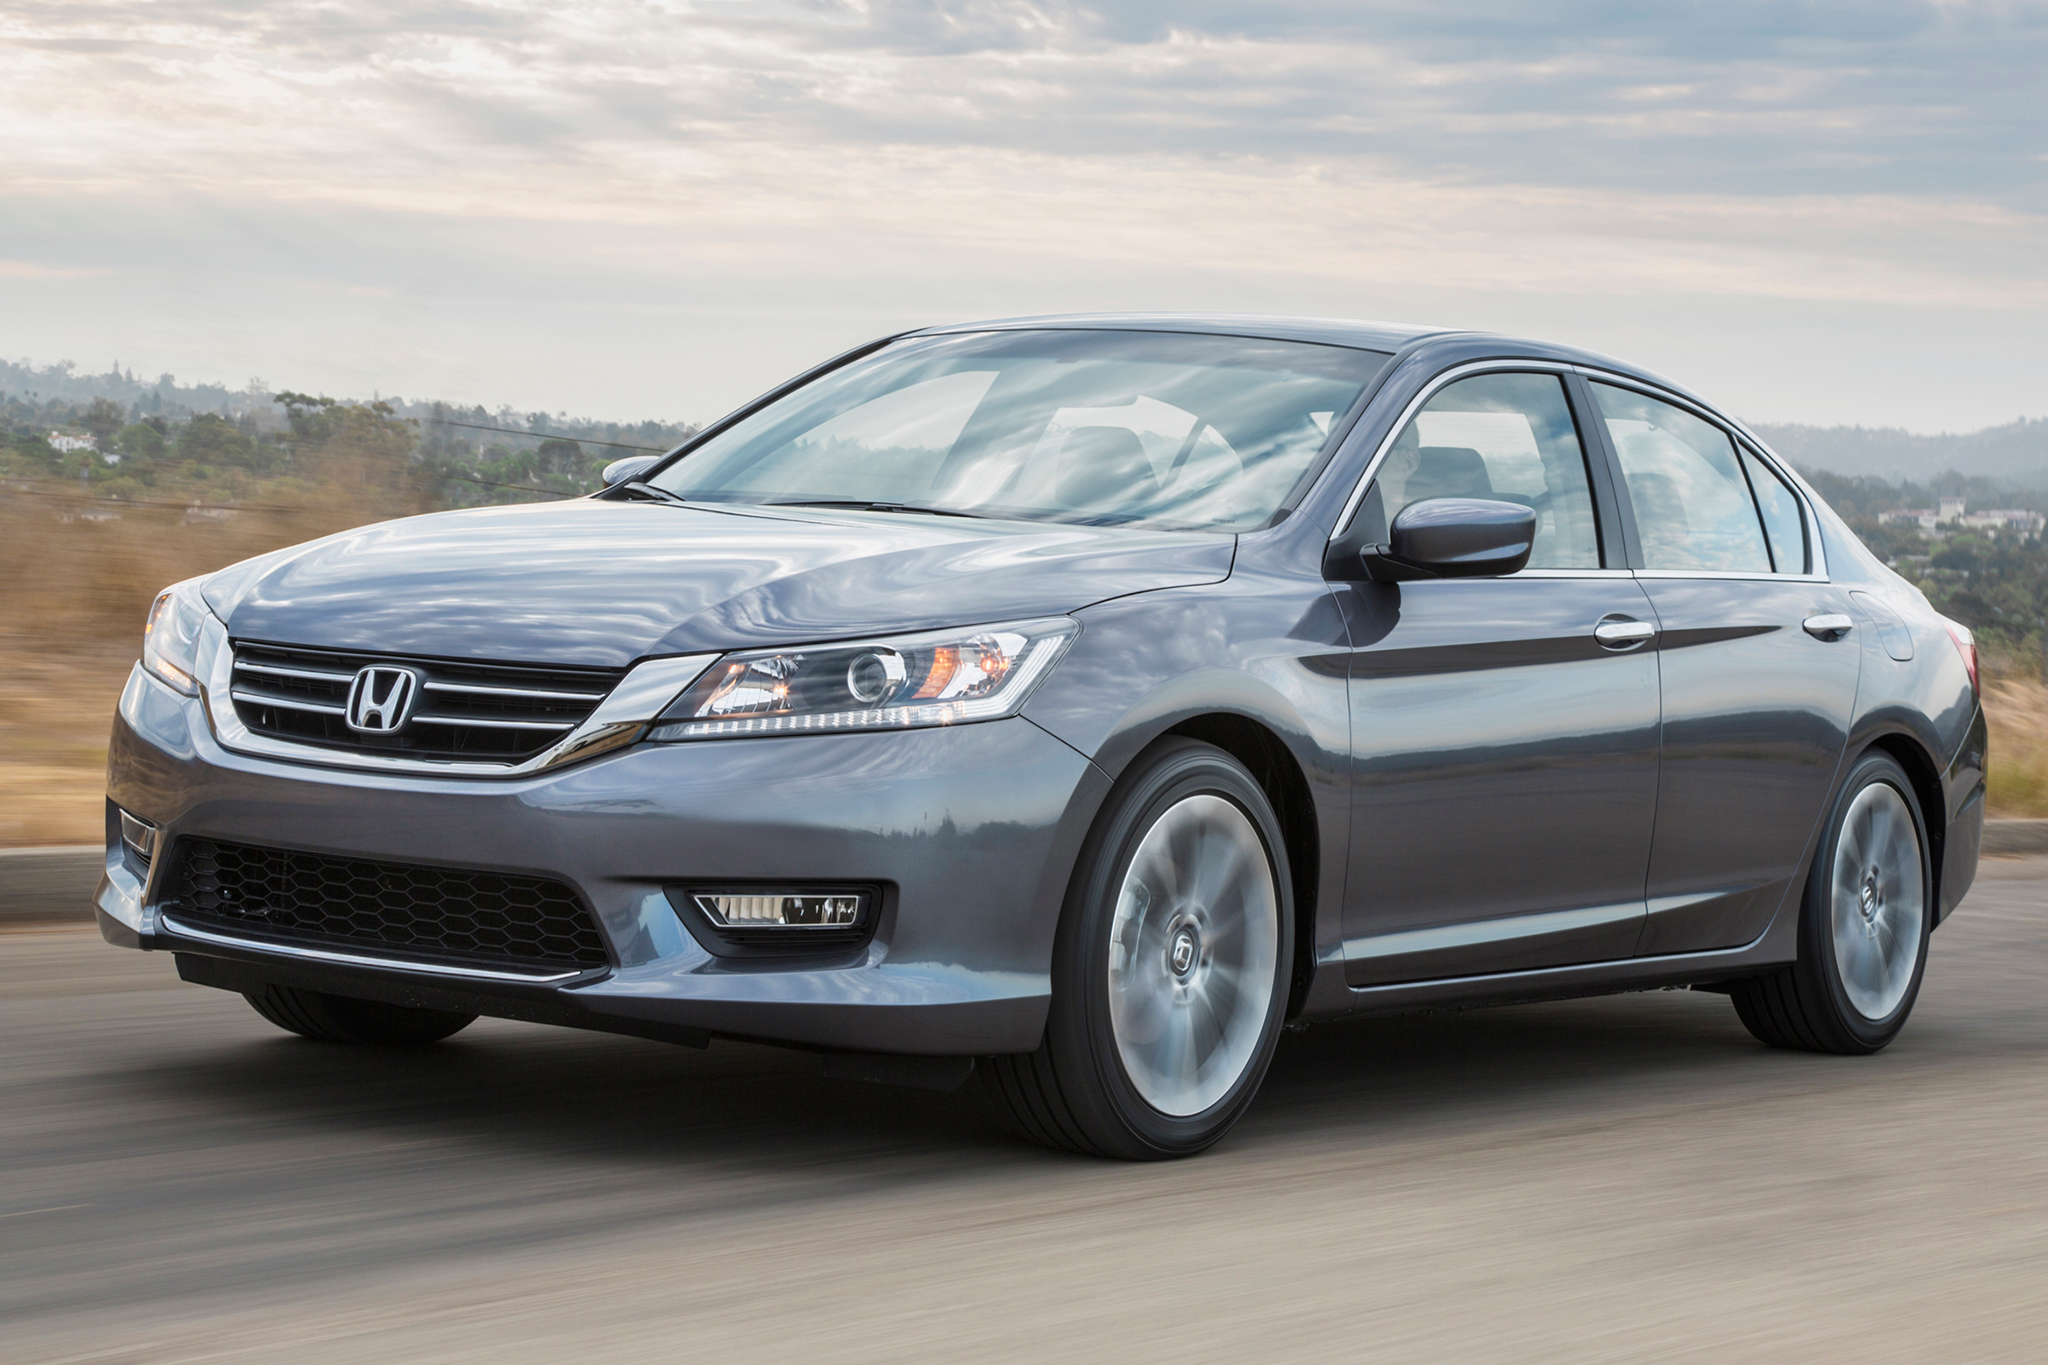 2014 Honda Accord #19